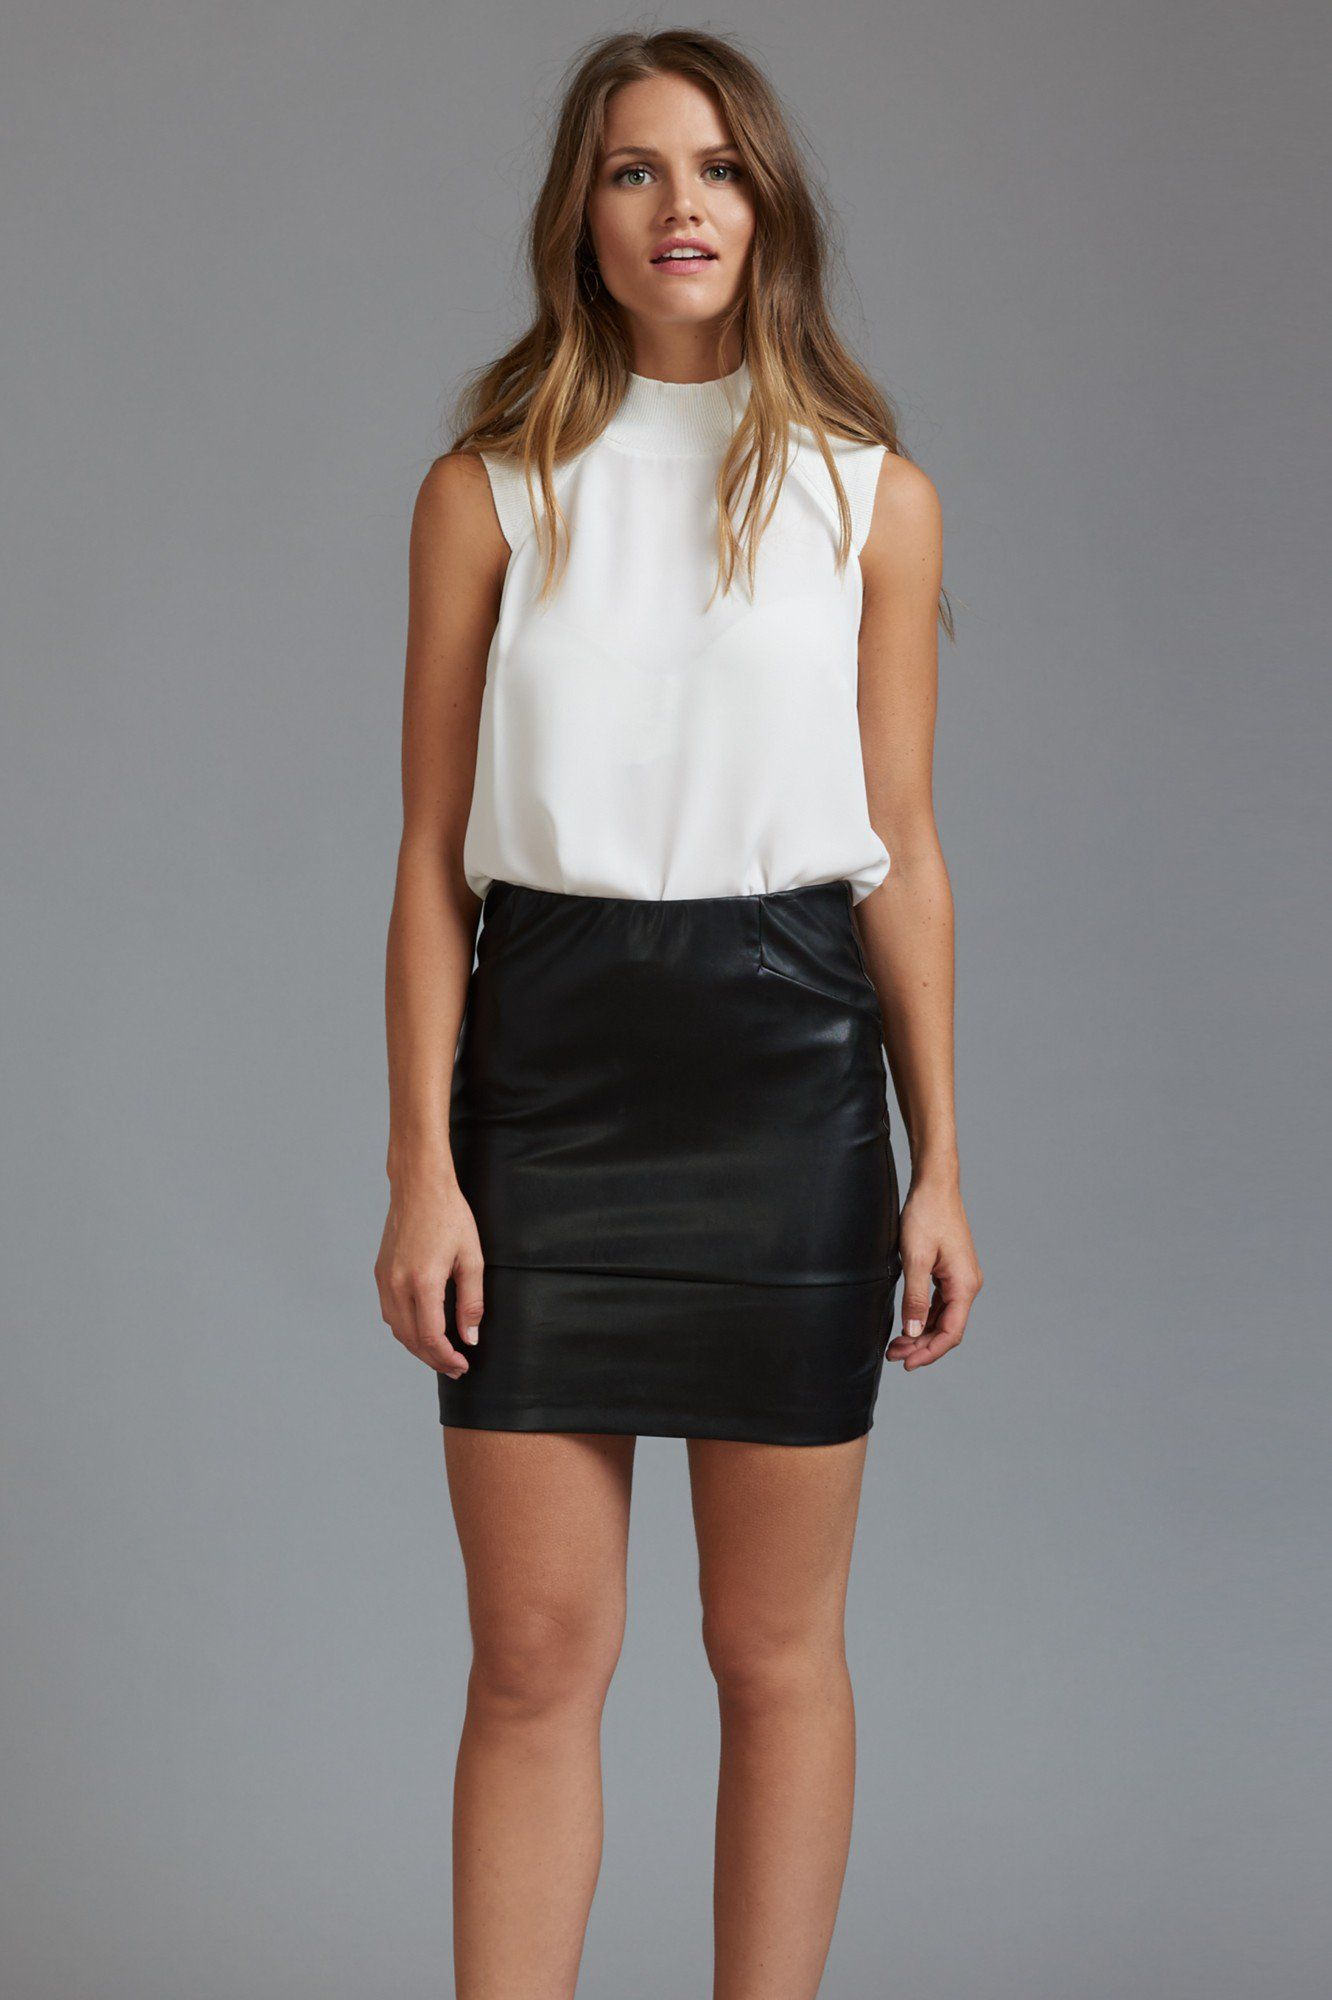 Textured leather meets a hot mini length to bring you the perfect fitted skirt.